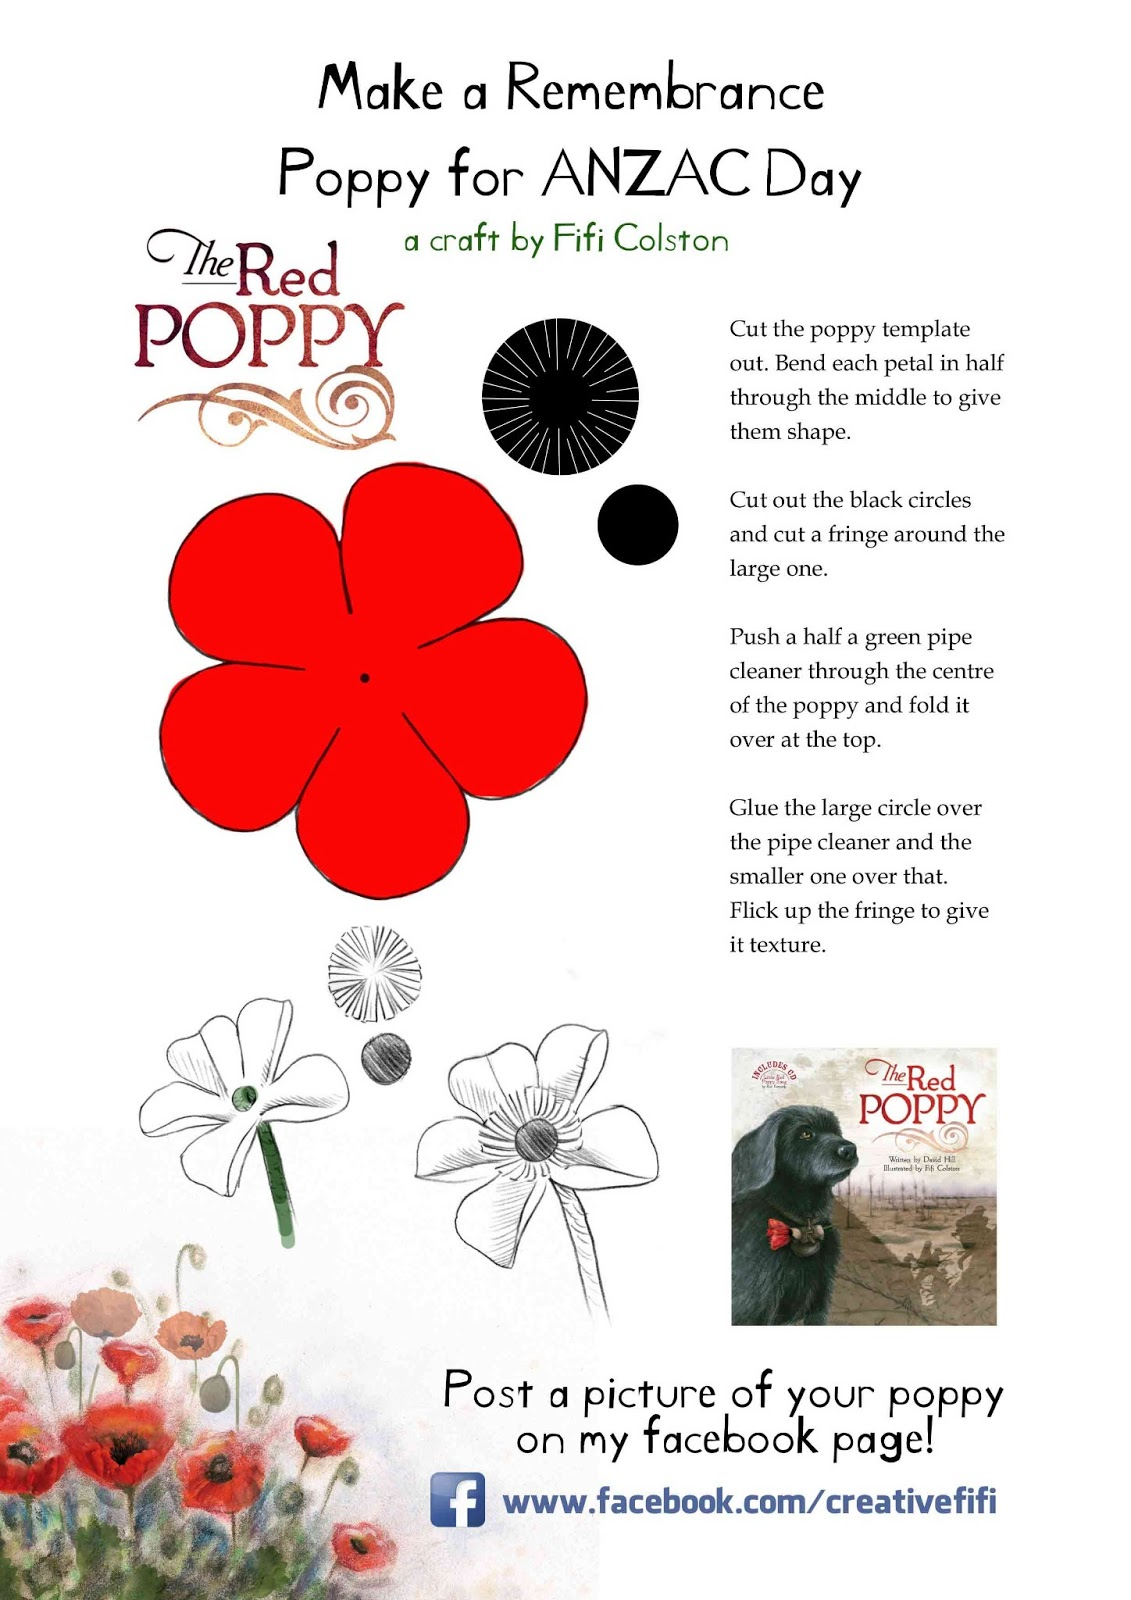 I Ve Updated My Poppy Template From Last Year In Time For Anzac Day Here It Is Feel Free To Use And Make A Field Full Of Poppies Remembrance